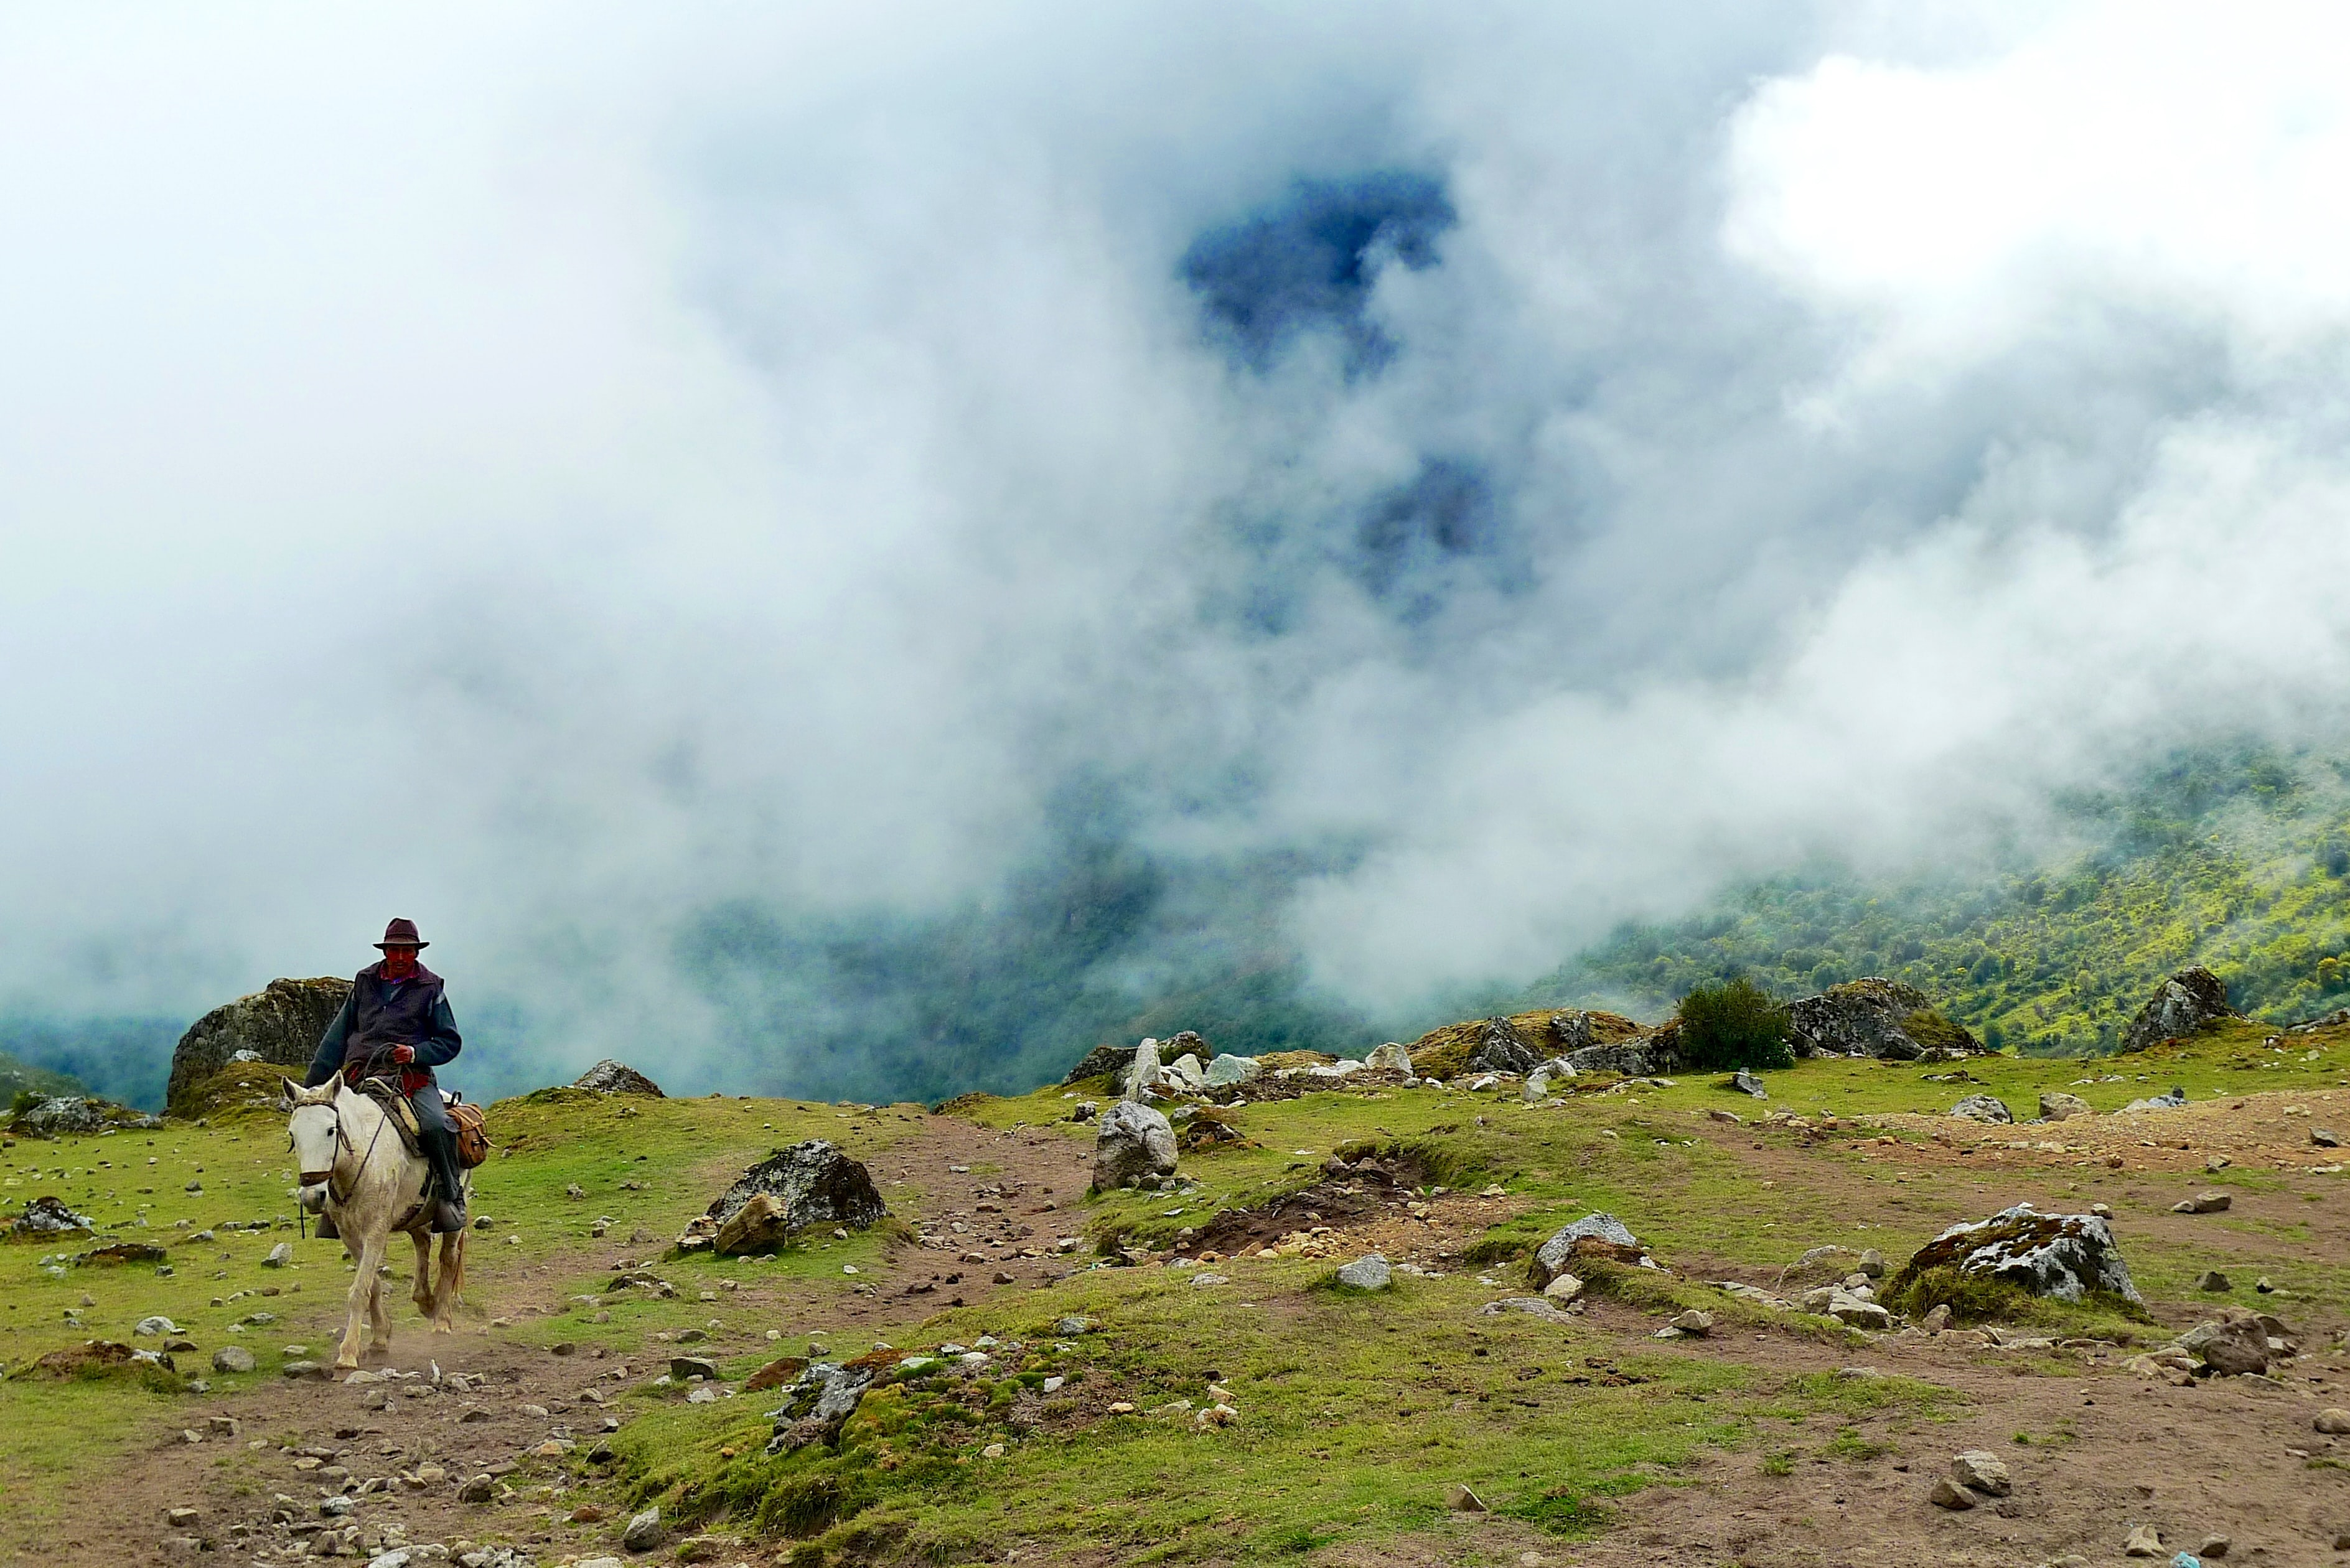 A man in a cowboy hat riding a horse on a rocky slope with mist in the valley behind his back